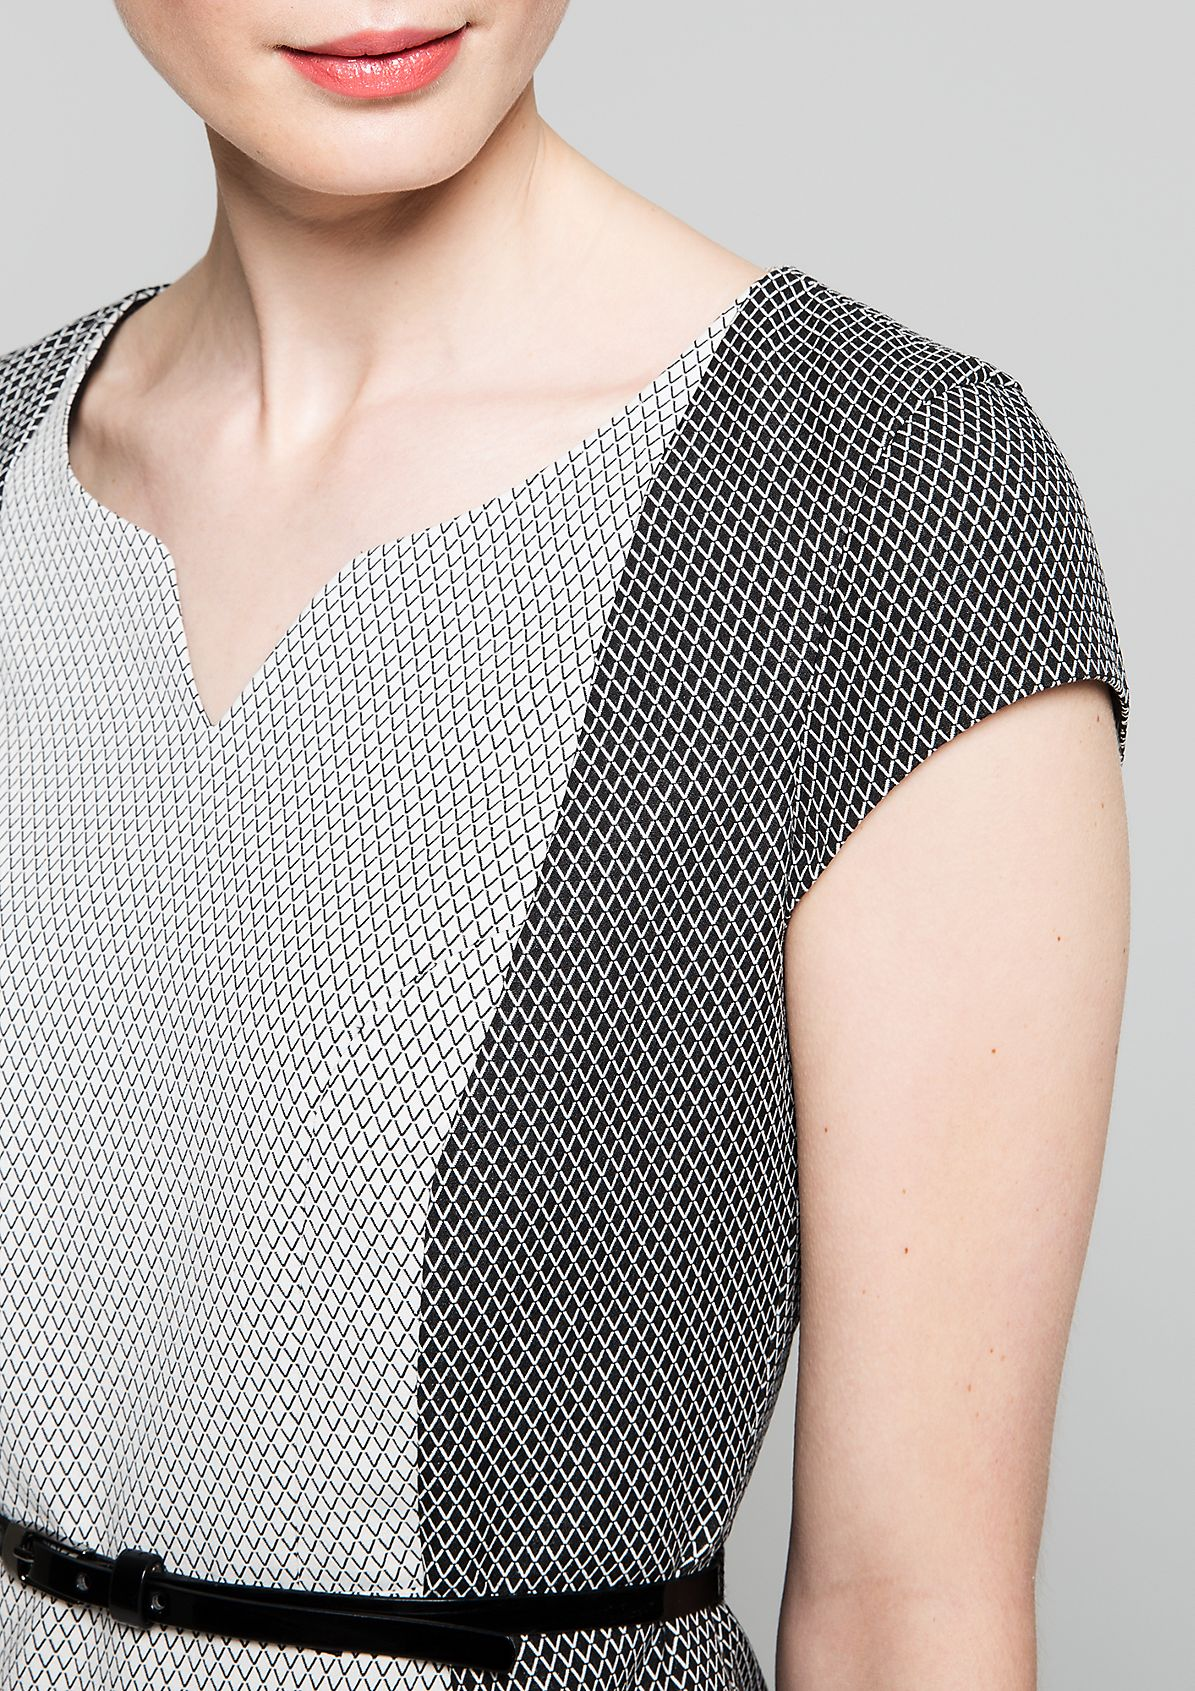 Classic shift dress with a spectacular, minimalist graphic design from s.Oliver